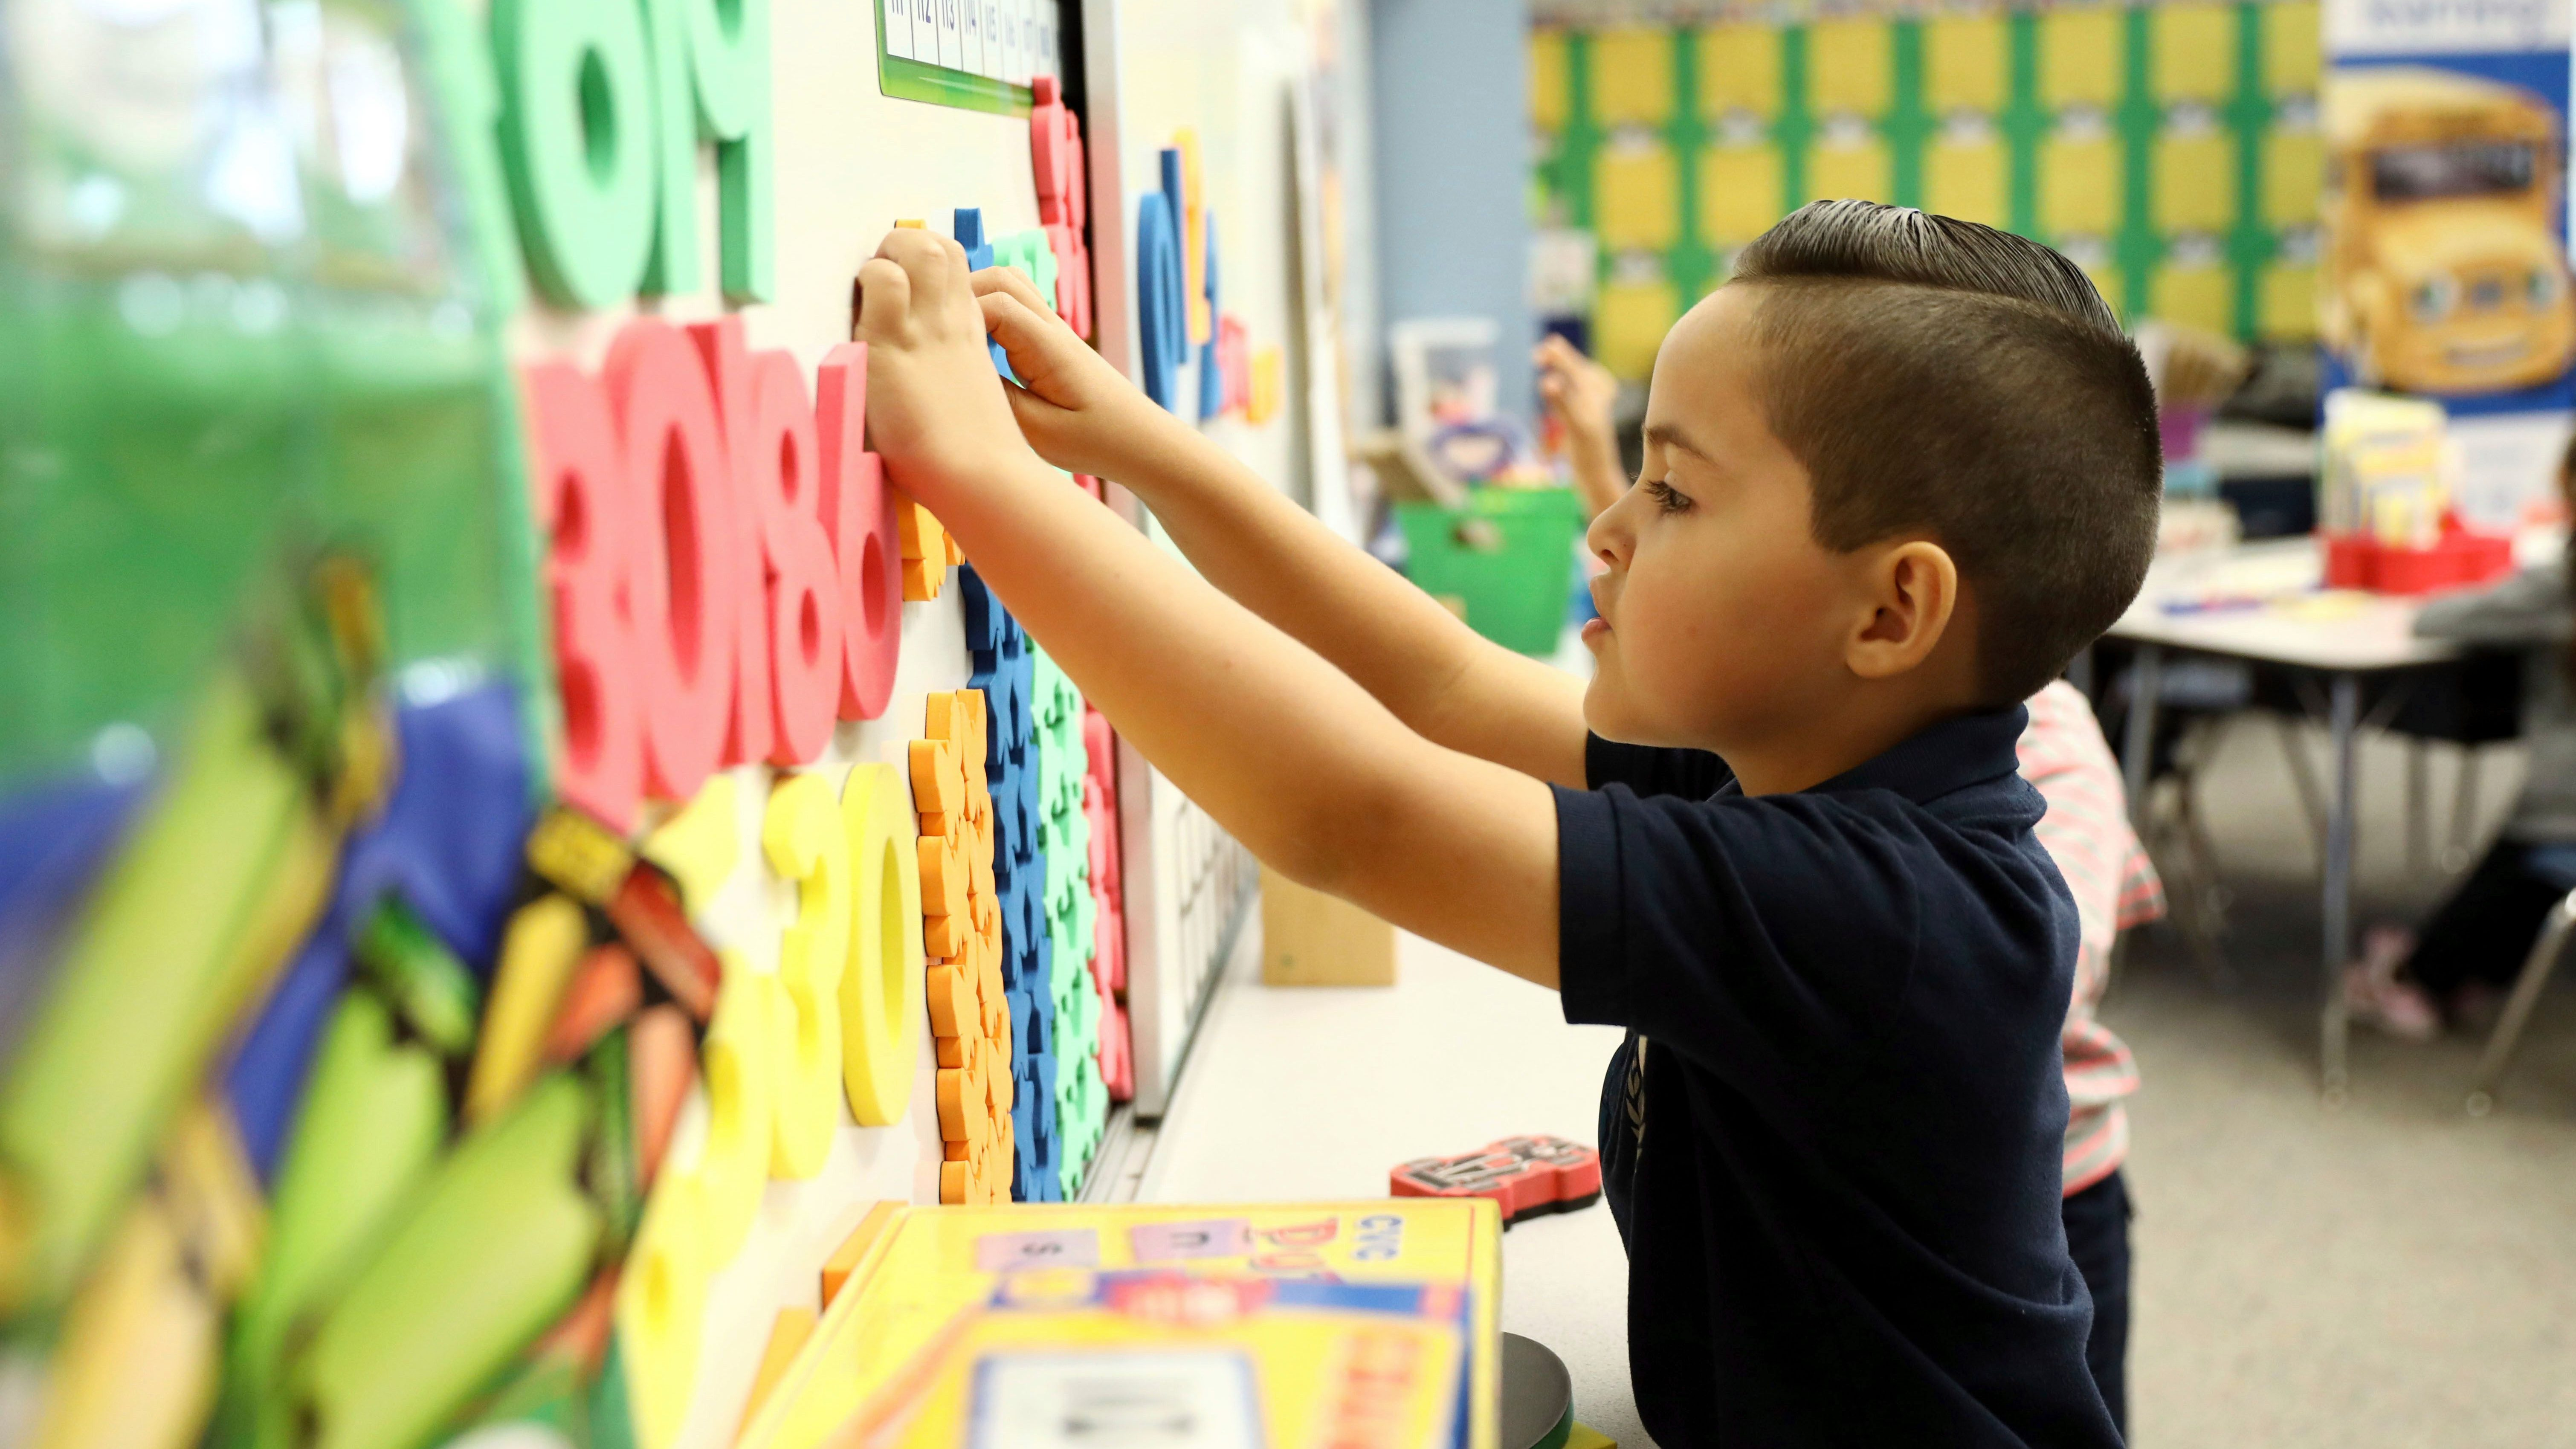 IMAGE DISTRIBUTED FOR CHEVRON - Chevron representatives visited Ms. Mathis' kindergarten classroom at Kornblum Elementary School in Hawthorne, Calif. this morning to see their newly funded math and reading materials in action, on Wednesday, Nov. 1, 2017. Classroom project funding resulted from Ms. Mathis submitting her project through Chevron's Fuel Your School Program; an annual public school support initiative conducted in partnership with DonorsChoose.org to provide necessary classroom project materials for enhanced learning. Submissions opened on September 1 and teachers have until Friday, November 3 to submit their projects. (Matt Sayles/AP Images for Chevron)